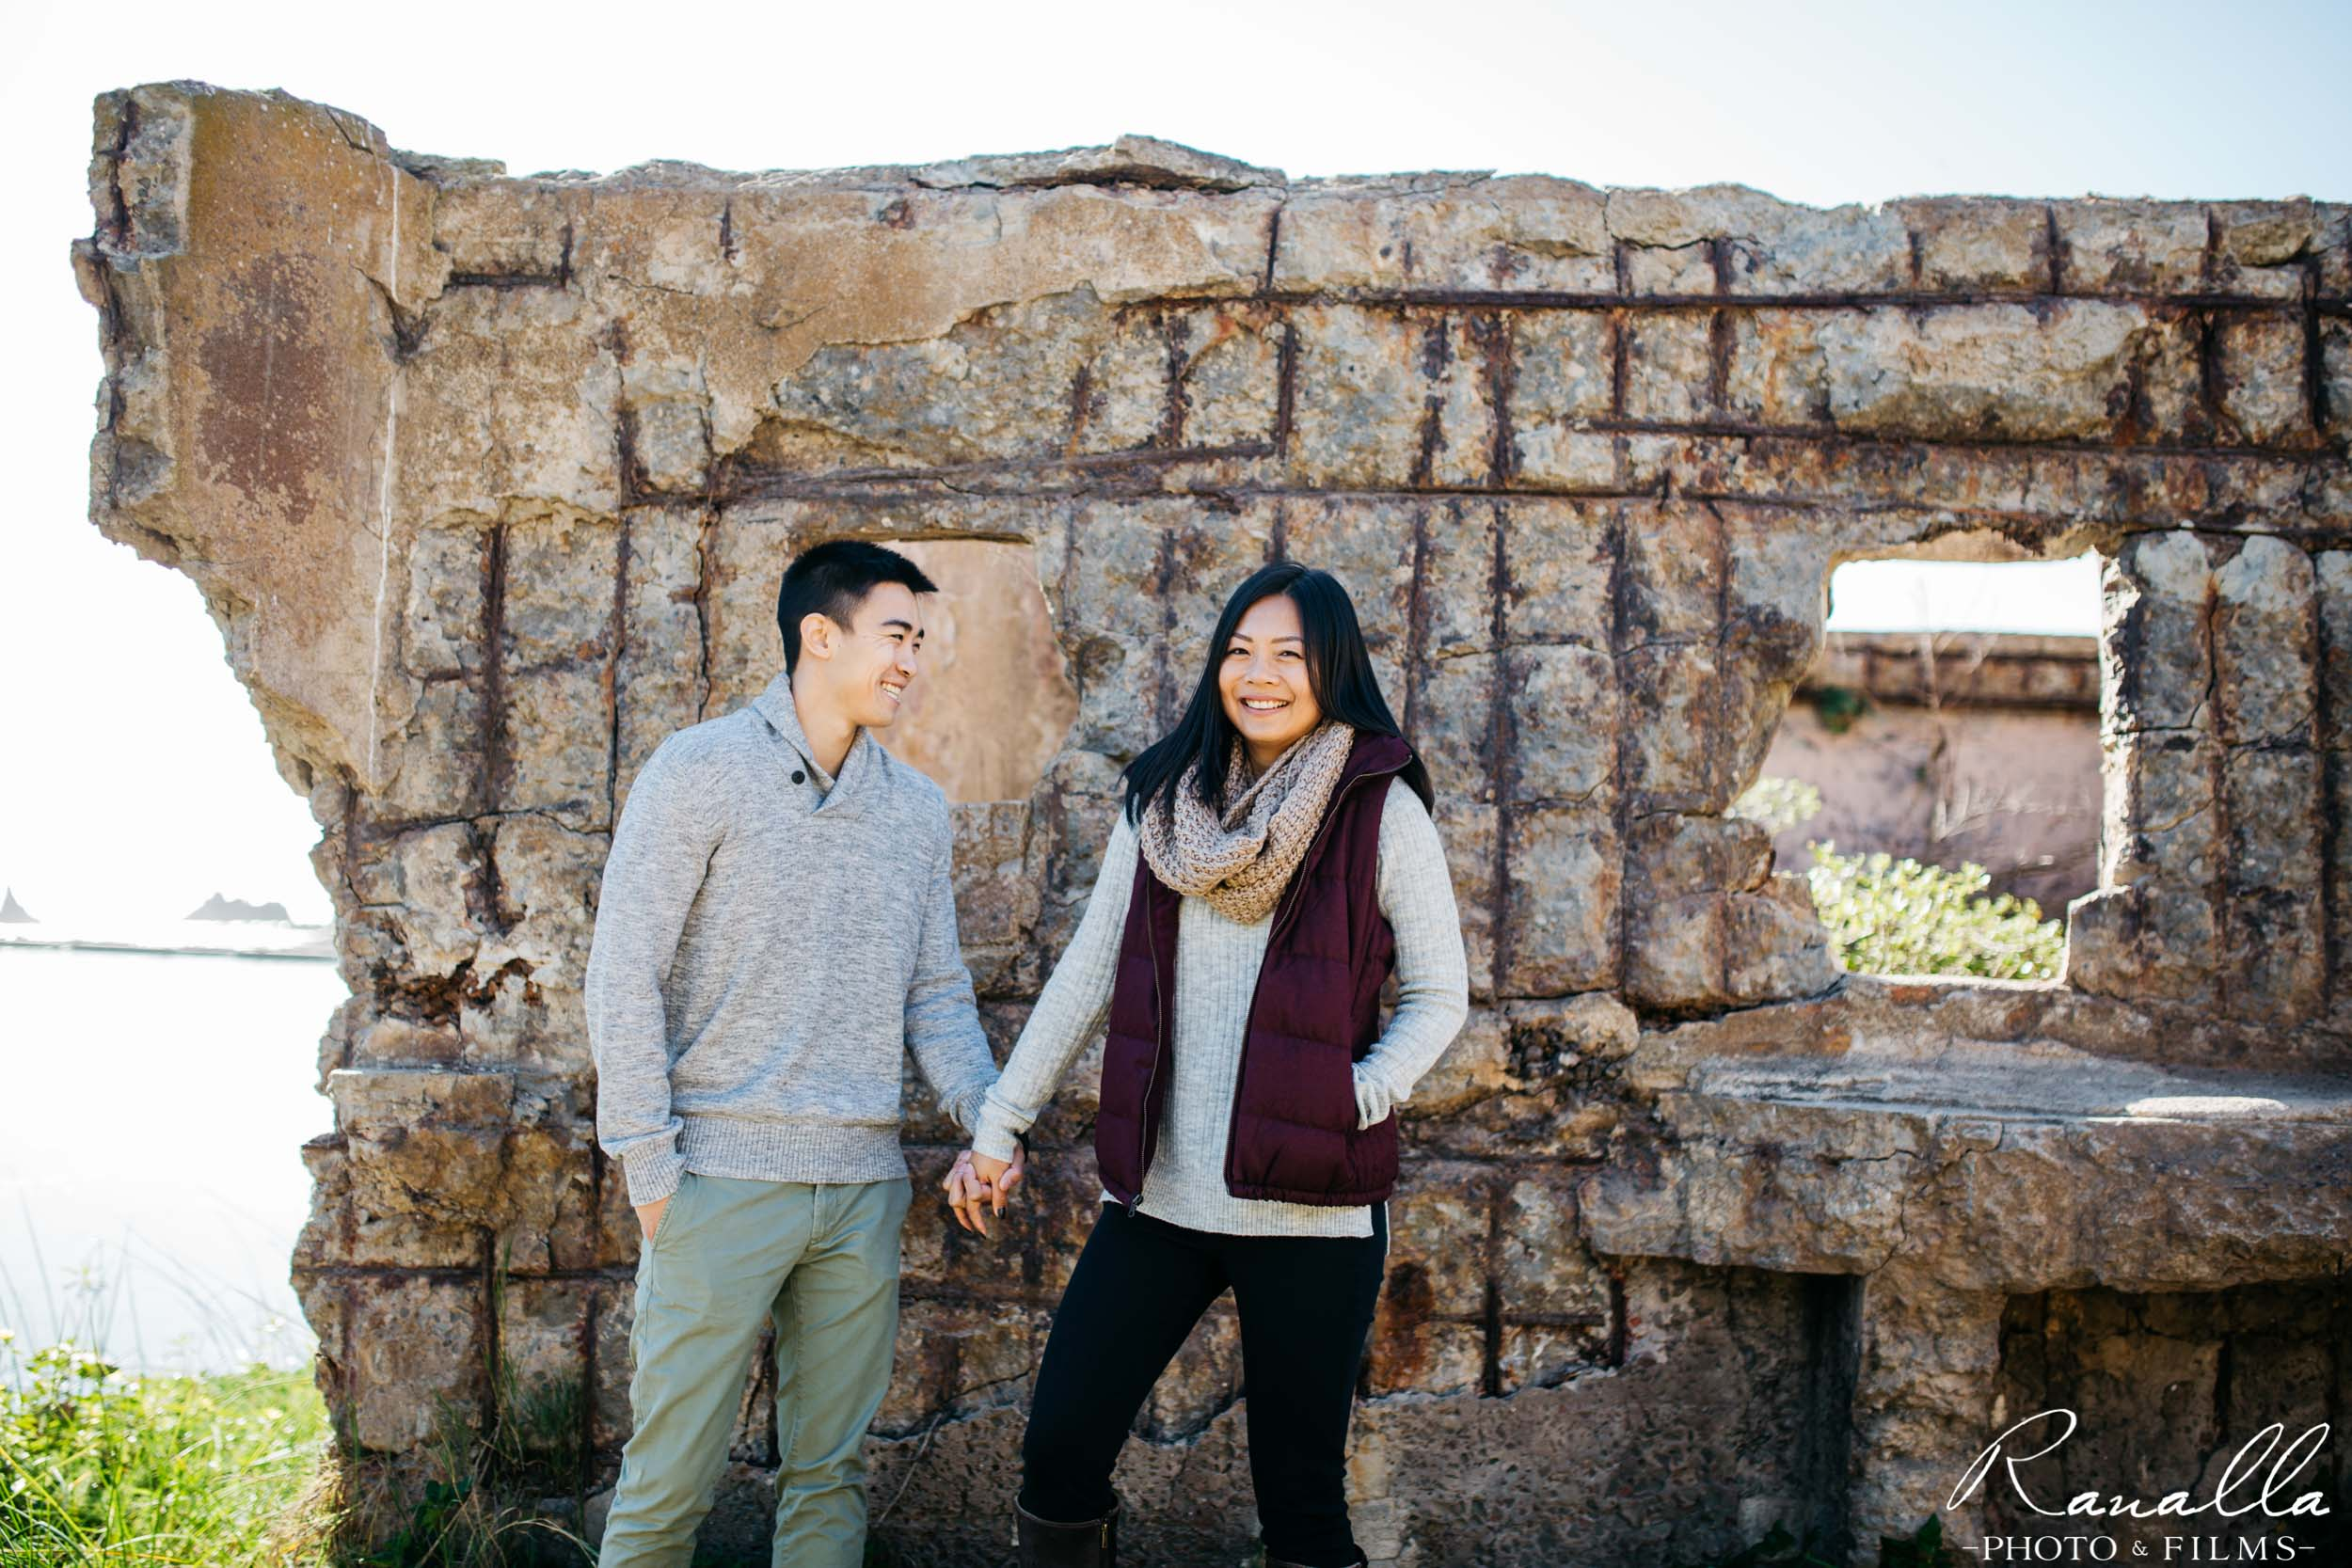 San Francisco Engagement Photography- Couple Holding Hands- Lands End Wedding Photos- Ranalla Photo & Films